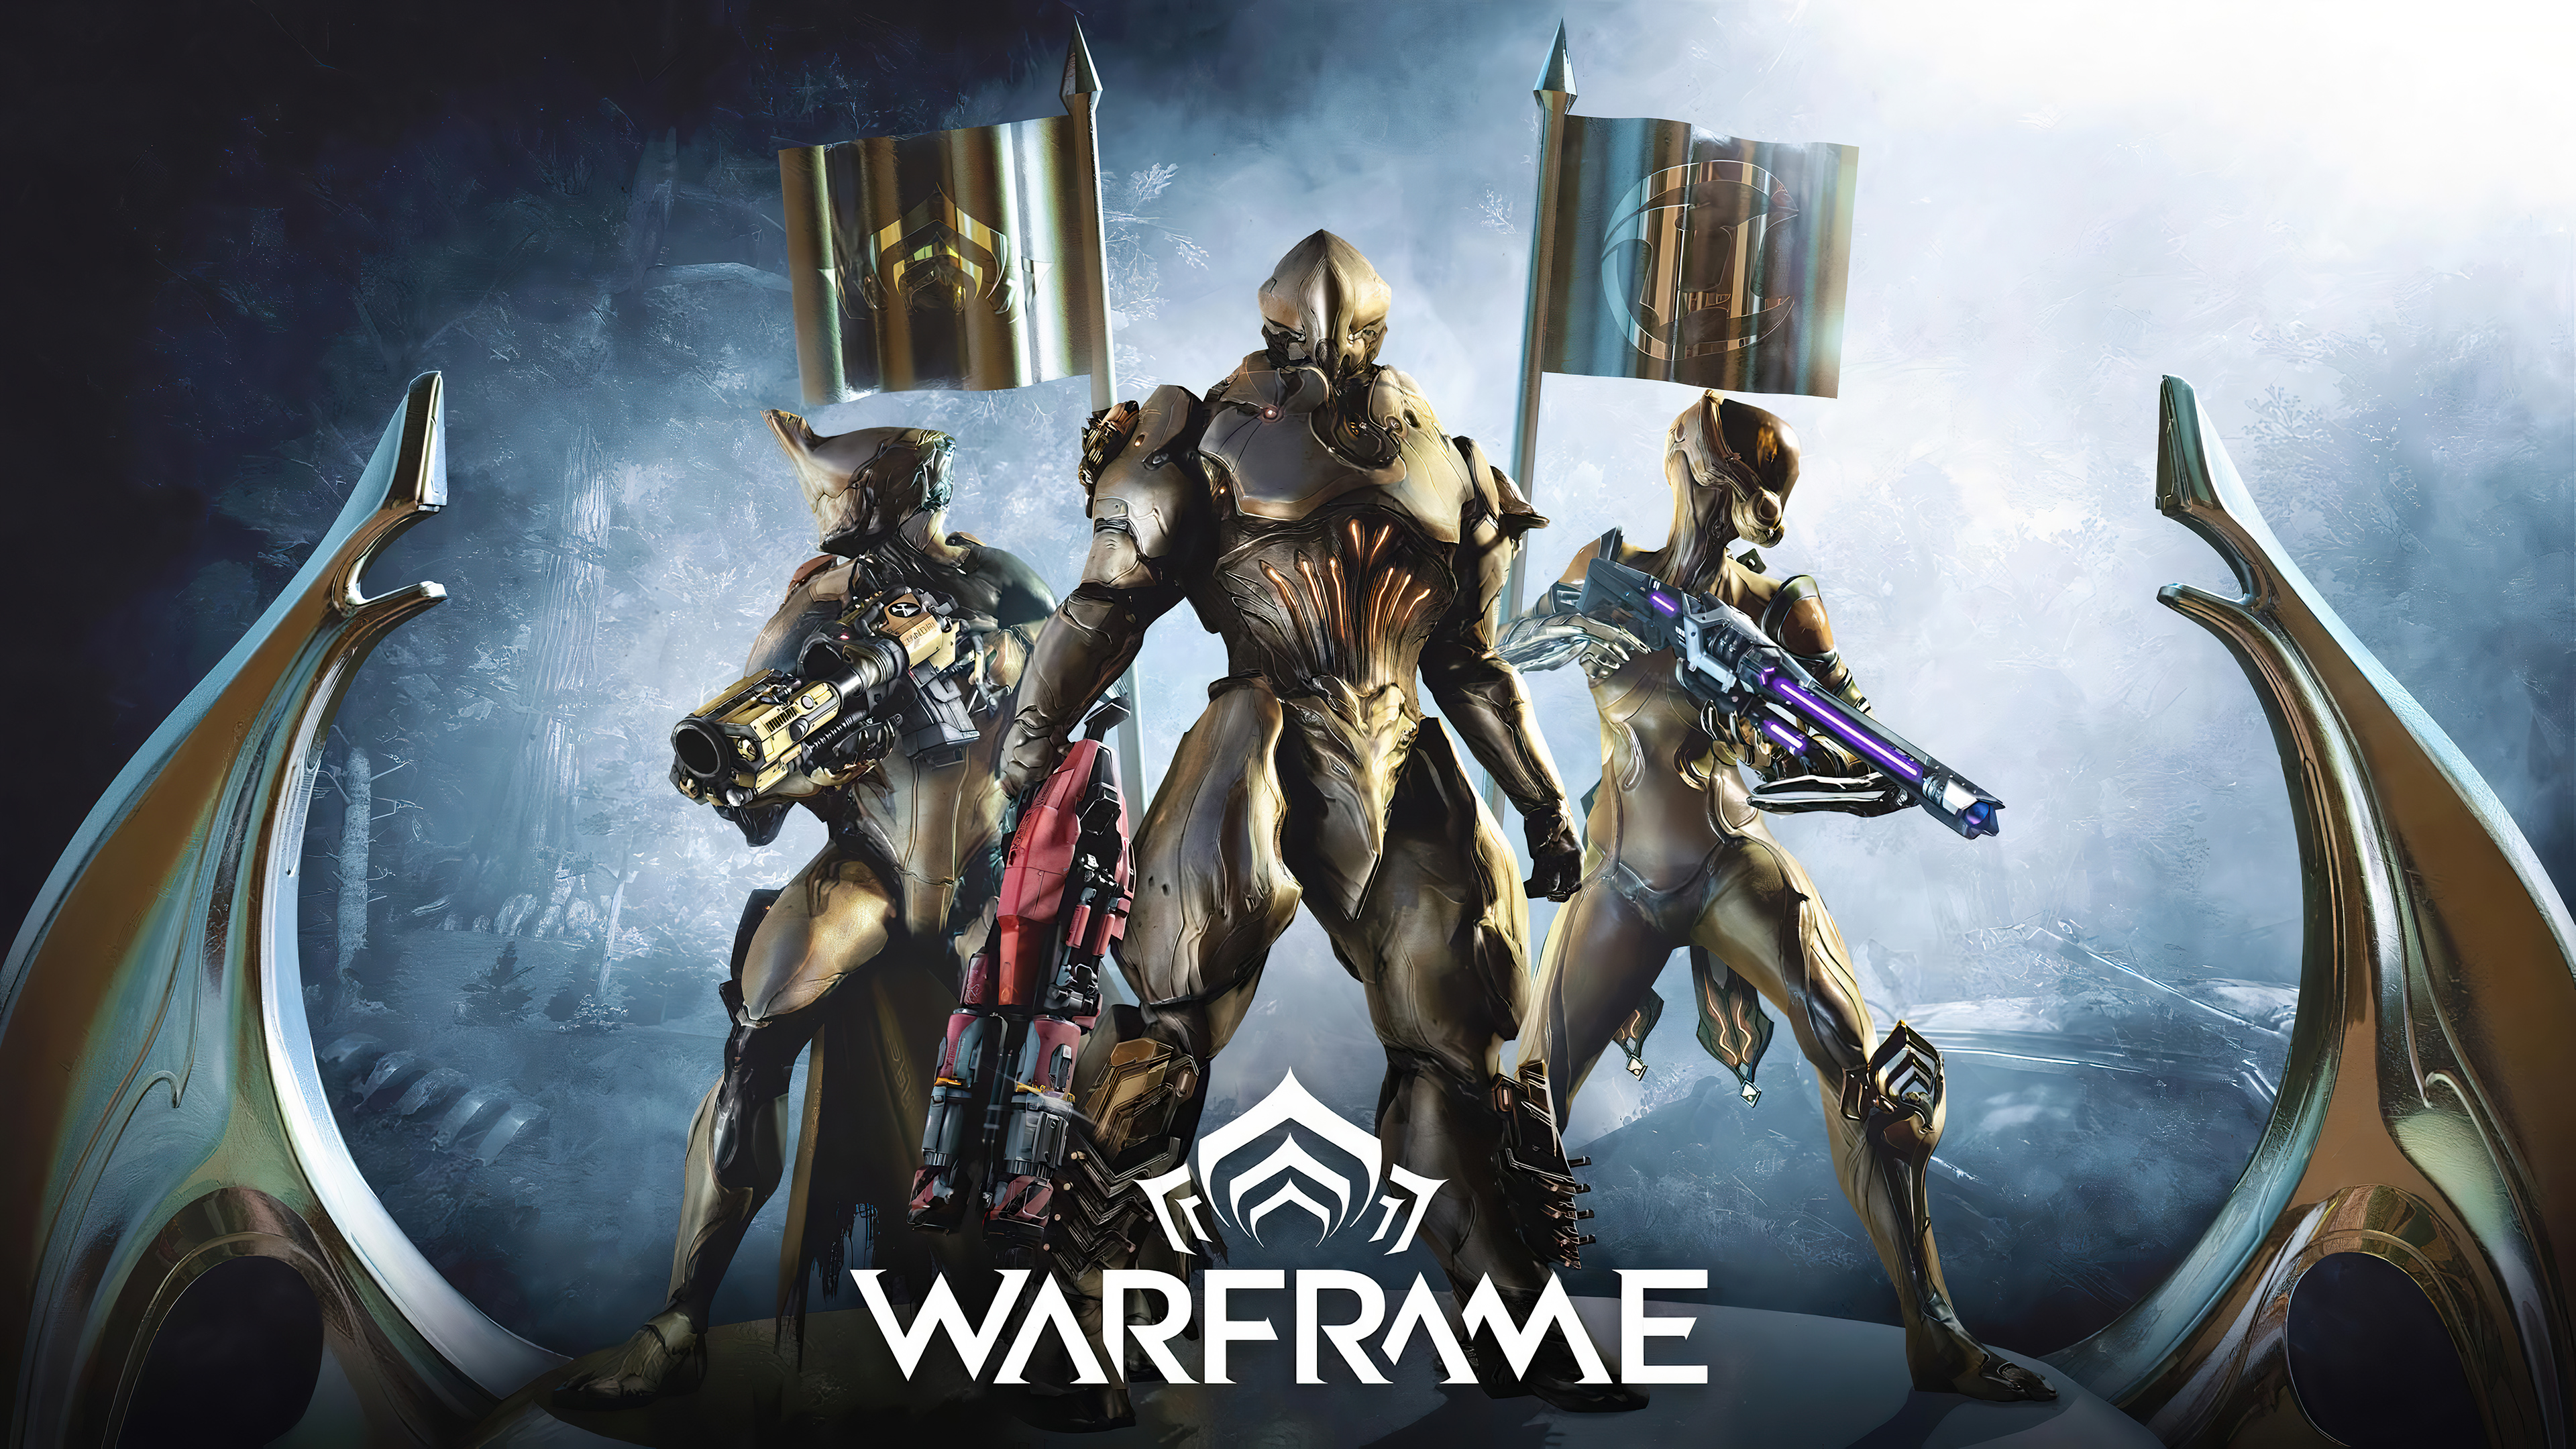 Wallpaper Warframe unreal tournament